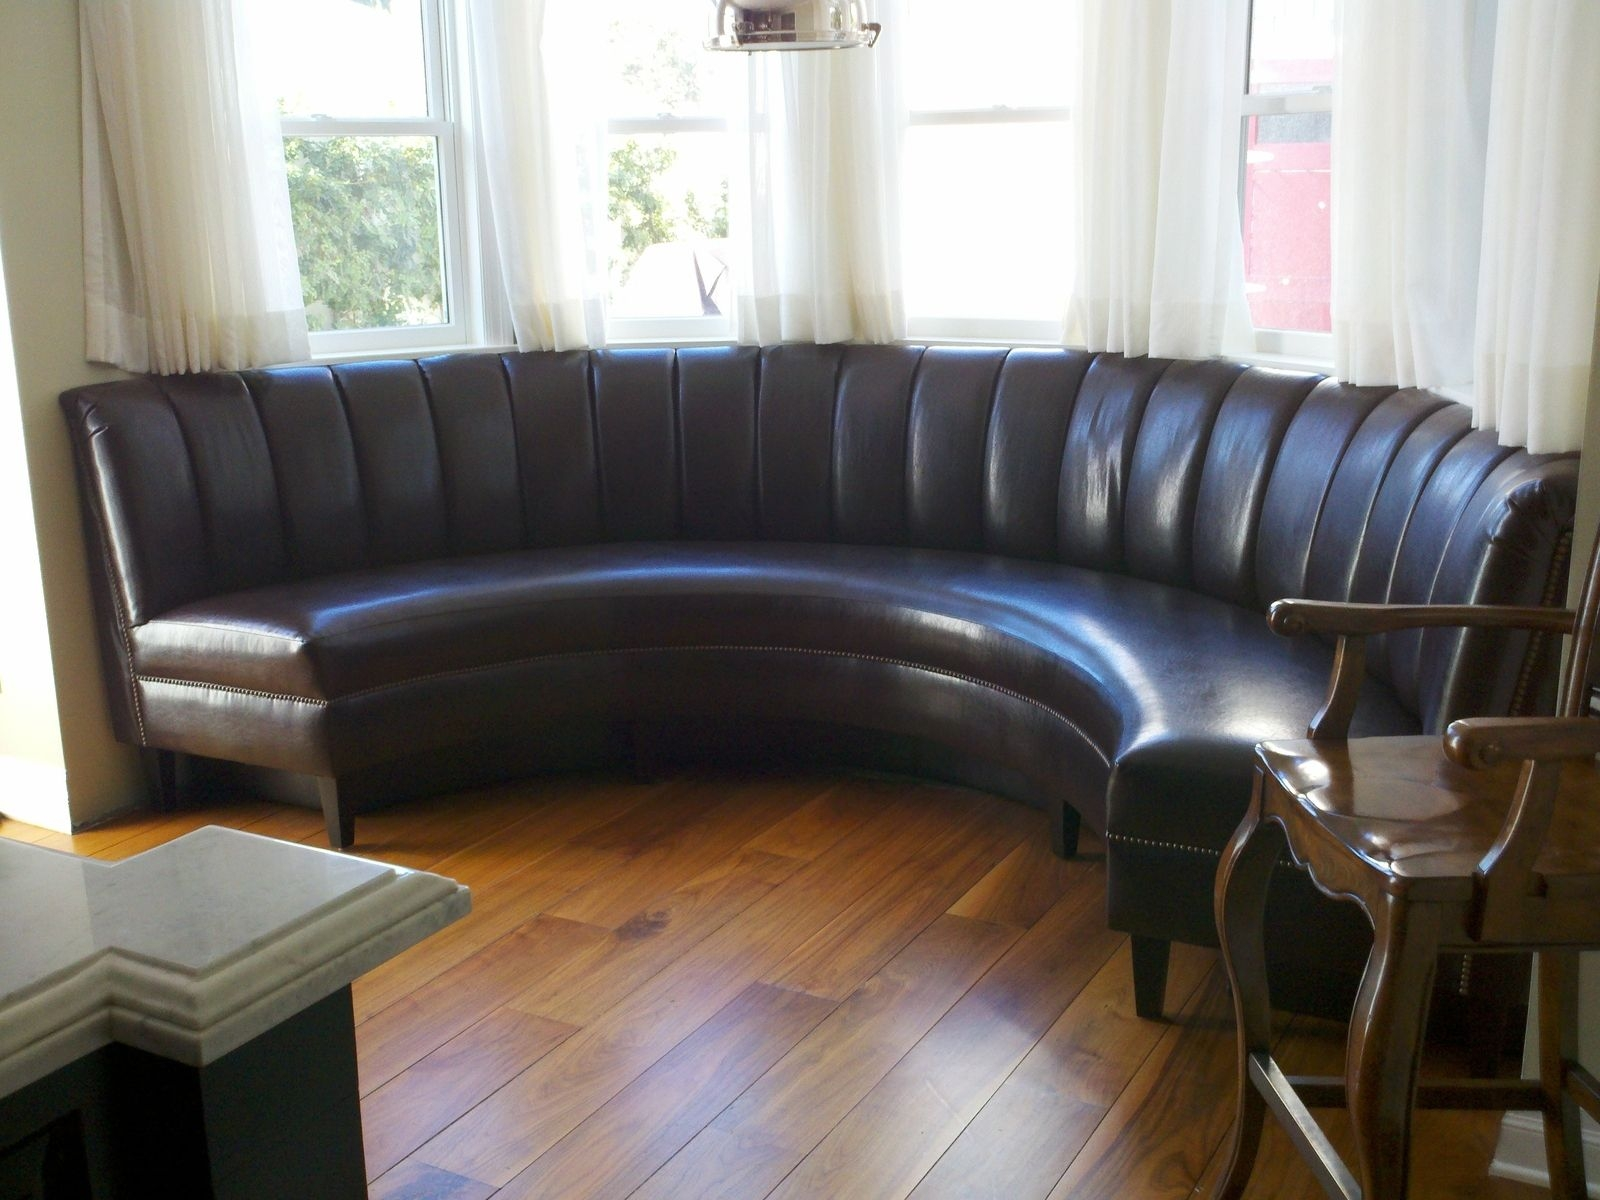 Custom Sofas Sectional And Leather Couches Custommade With Regard To Customized Sofas (Image 6 of 15)